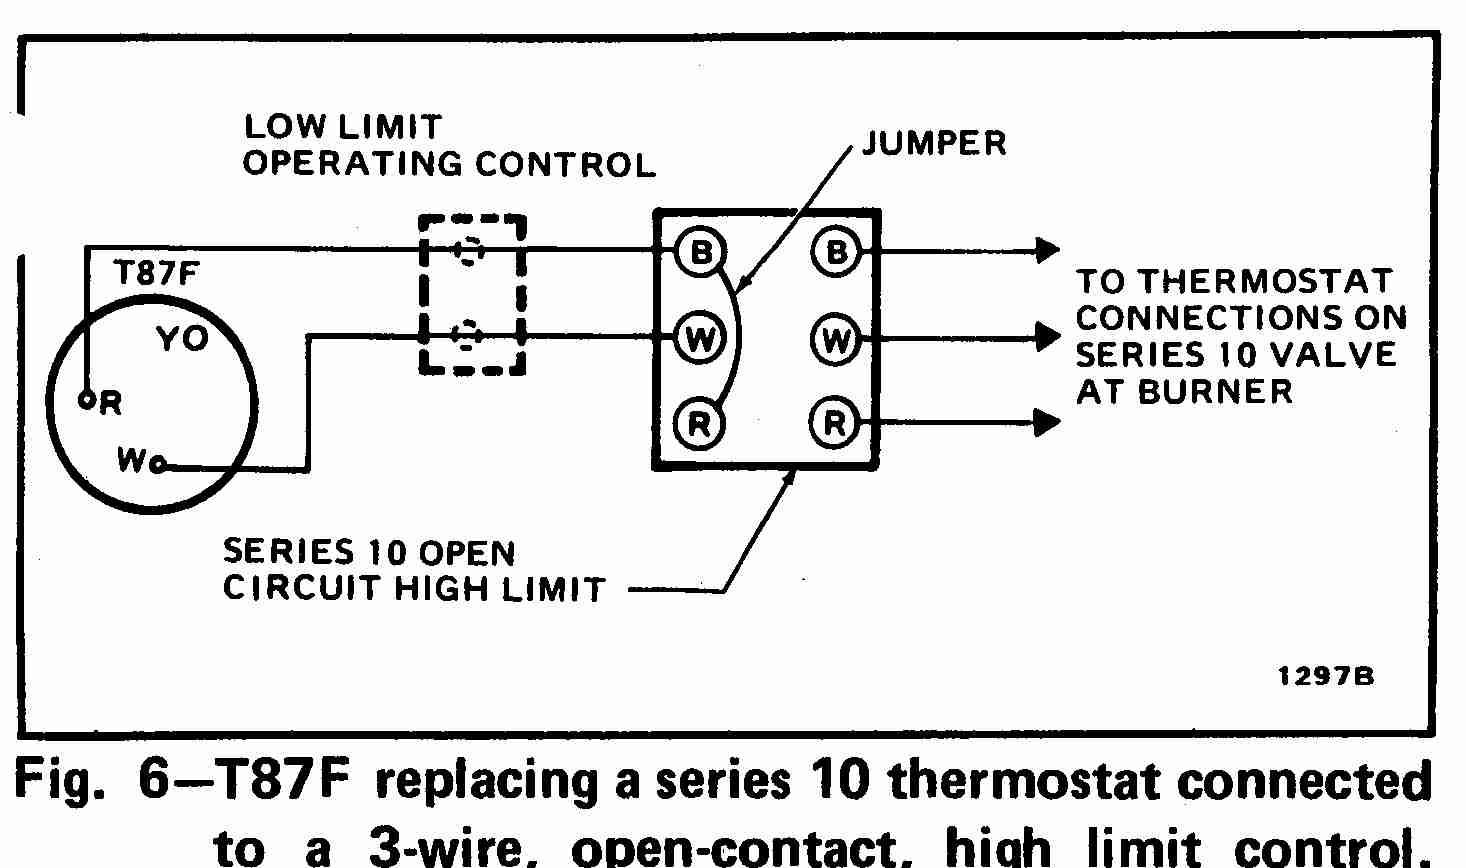 TT_T87F_0002_3WHL_DJF room thermostat wiring diagrams for hvac systems fcu wiring diagram at sewacar.co